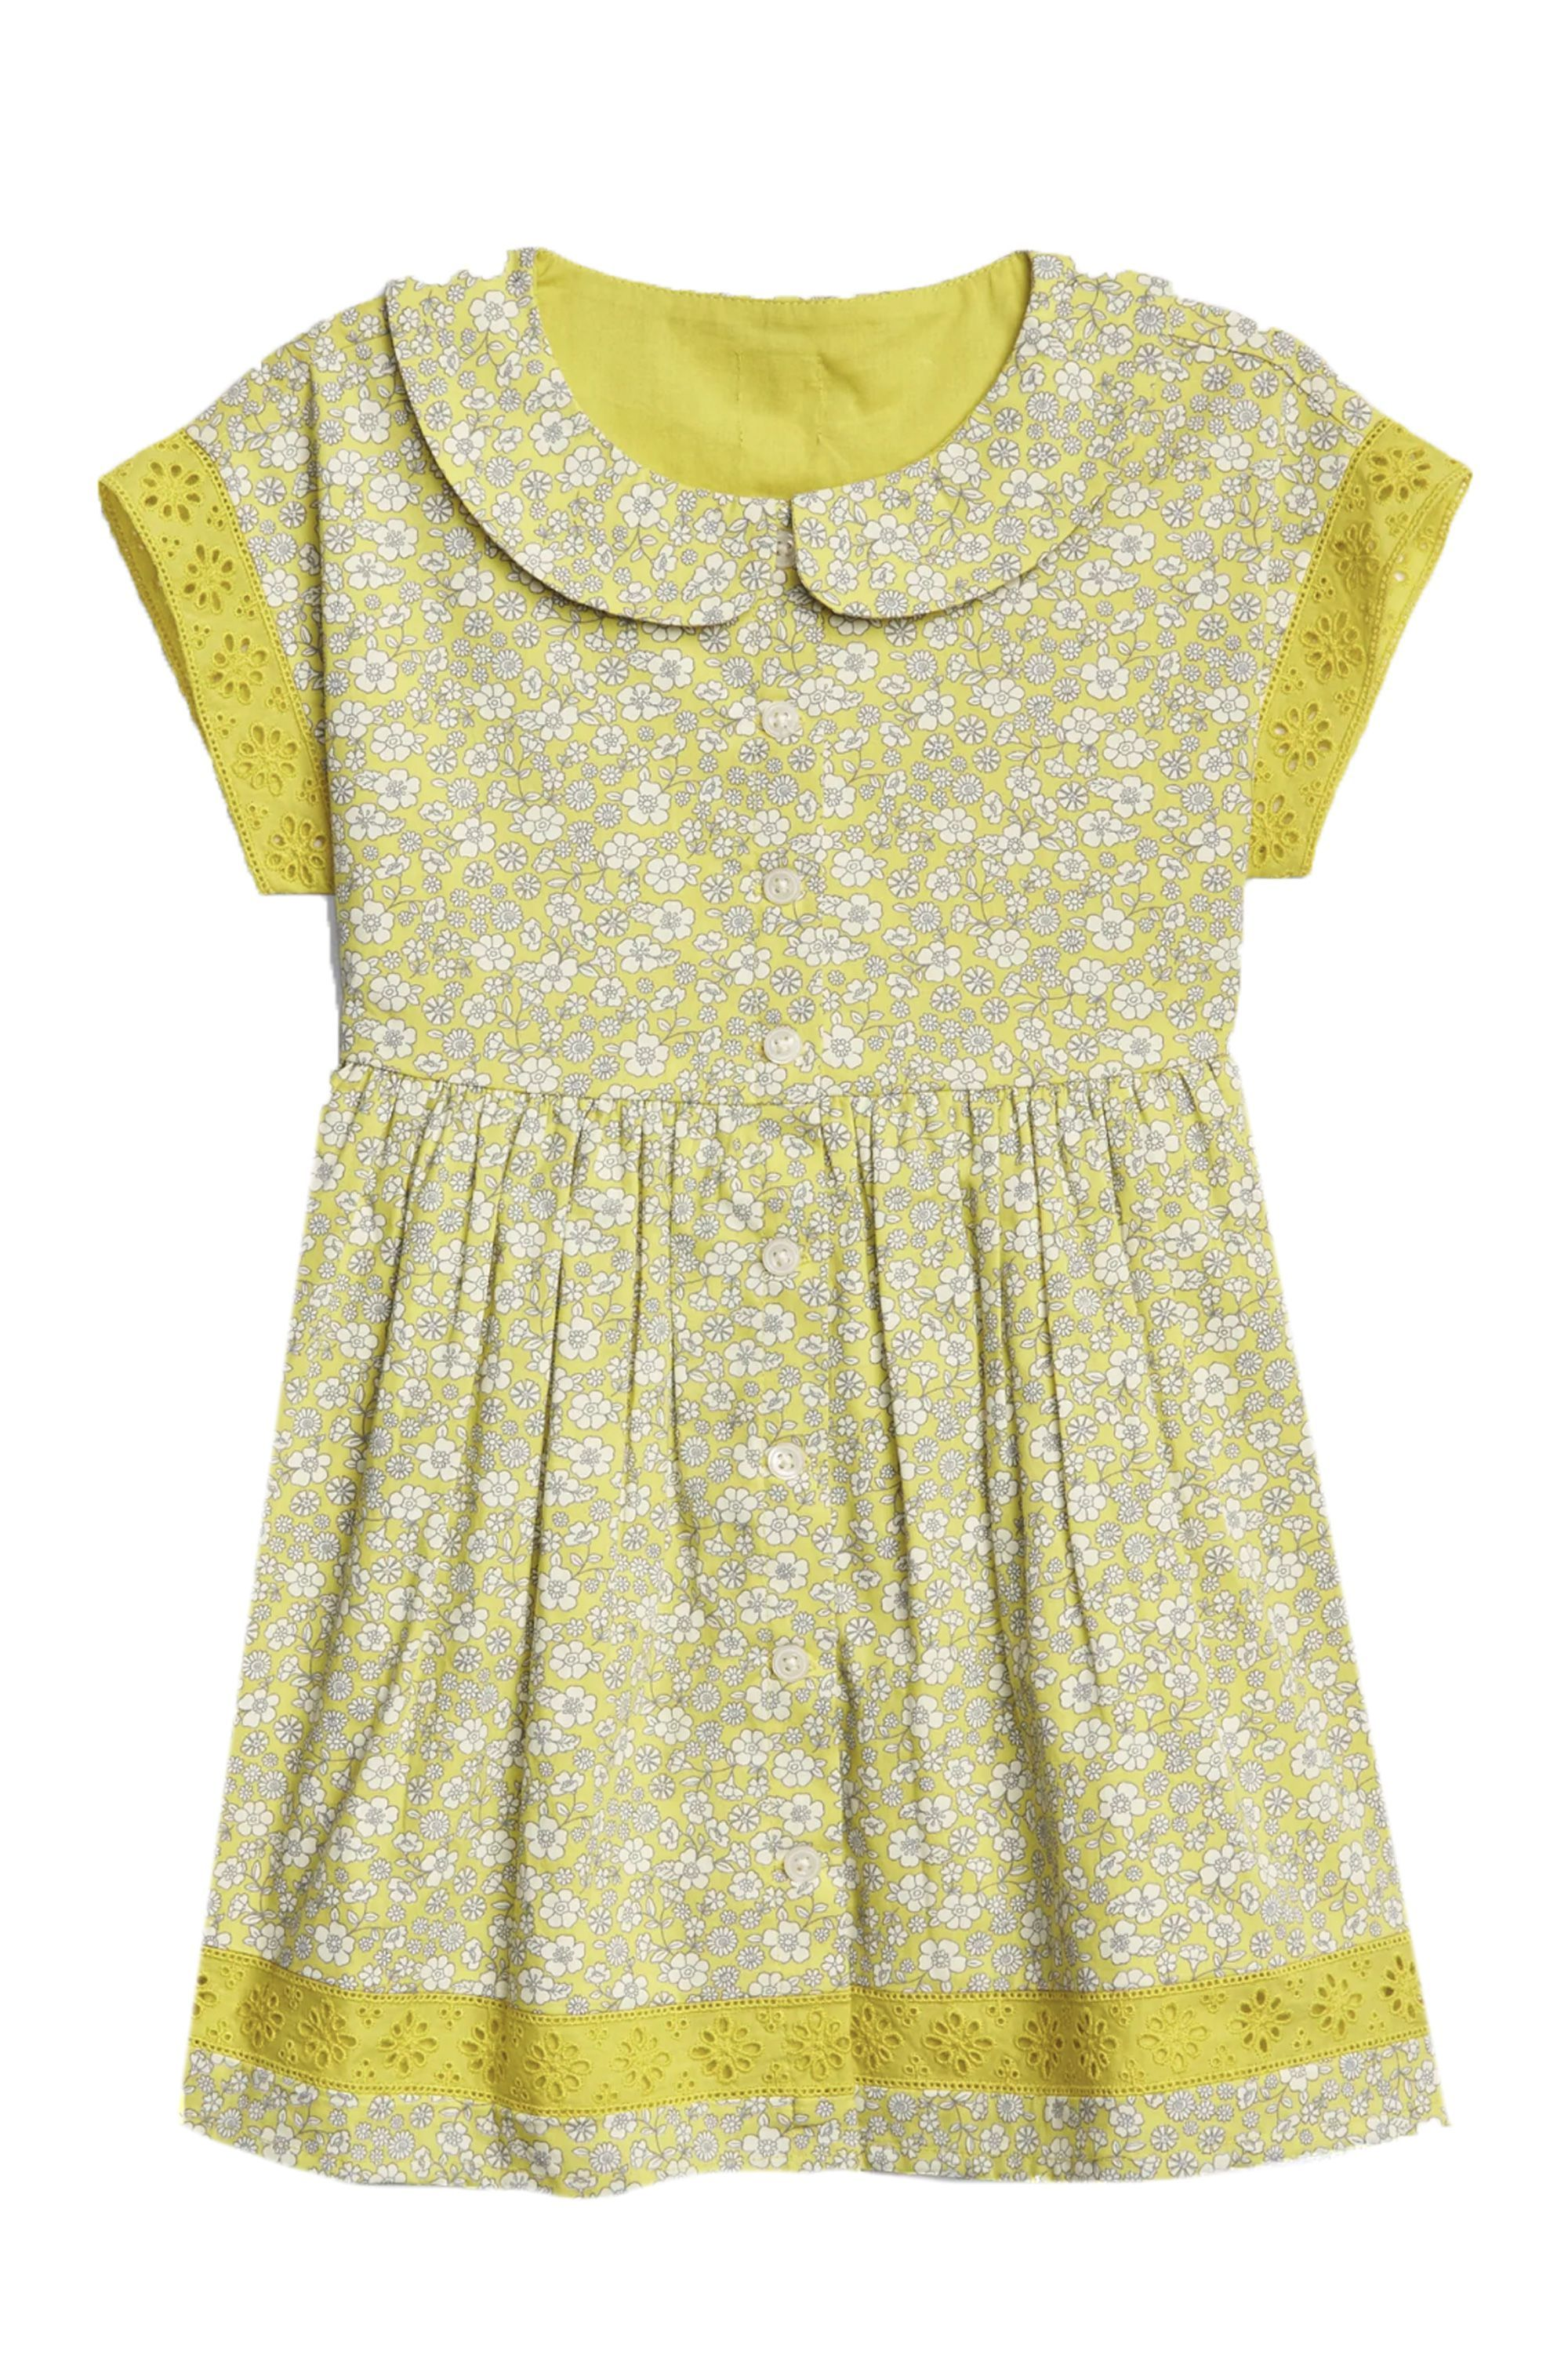 Print Eyelet Dress Gap gap.com $28.00 SHOP NOW Cute baby dresses are for parents, not the kids.